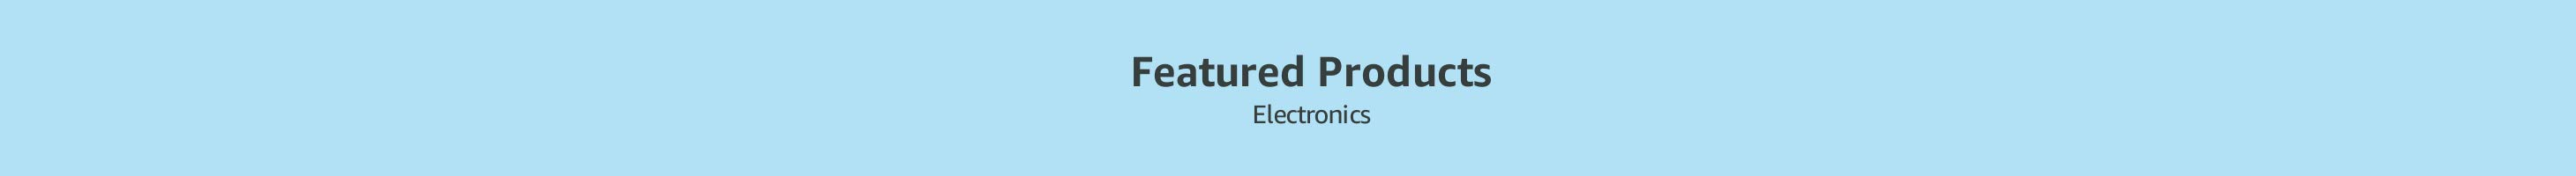 Featured Products: Electronics